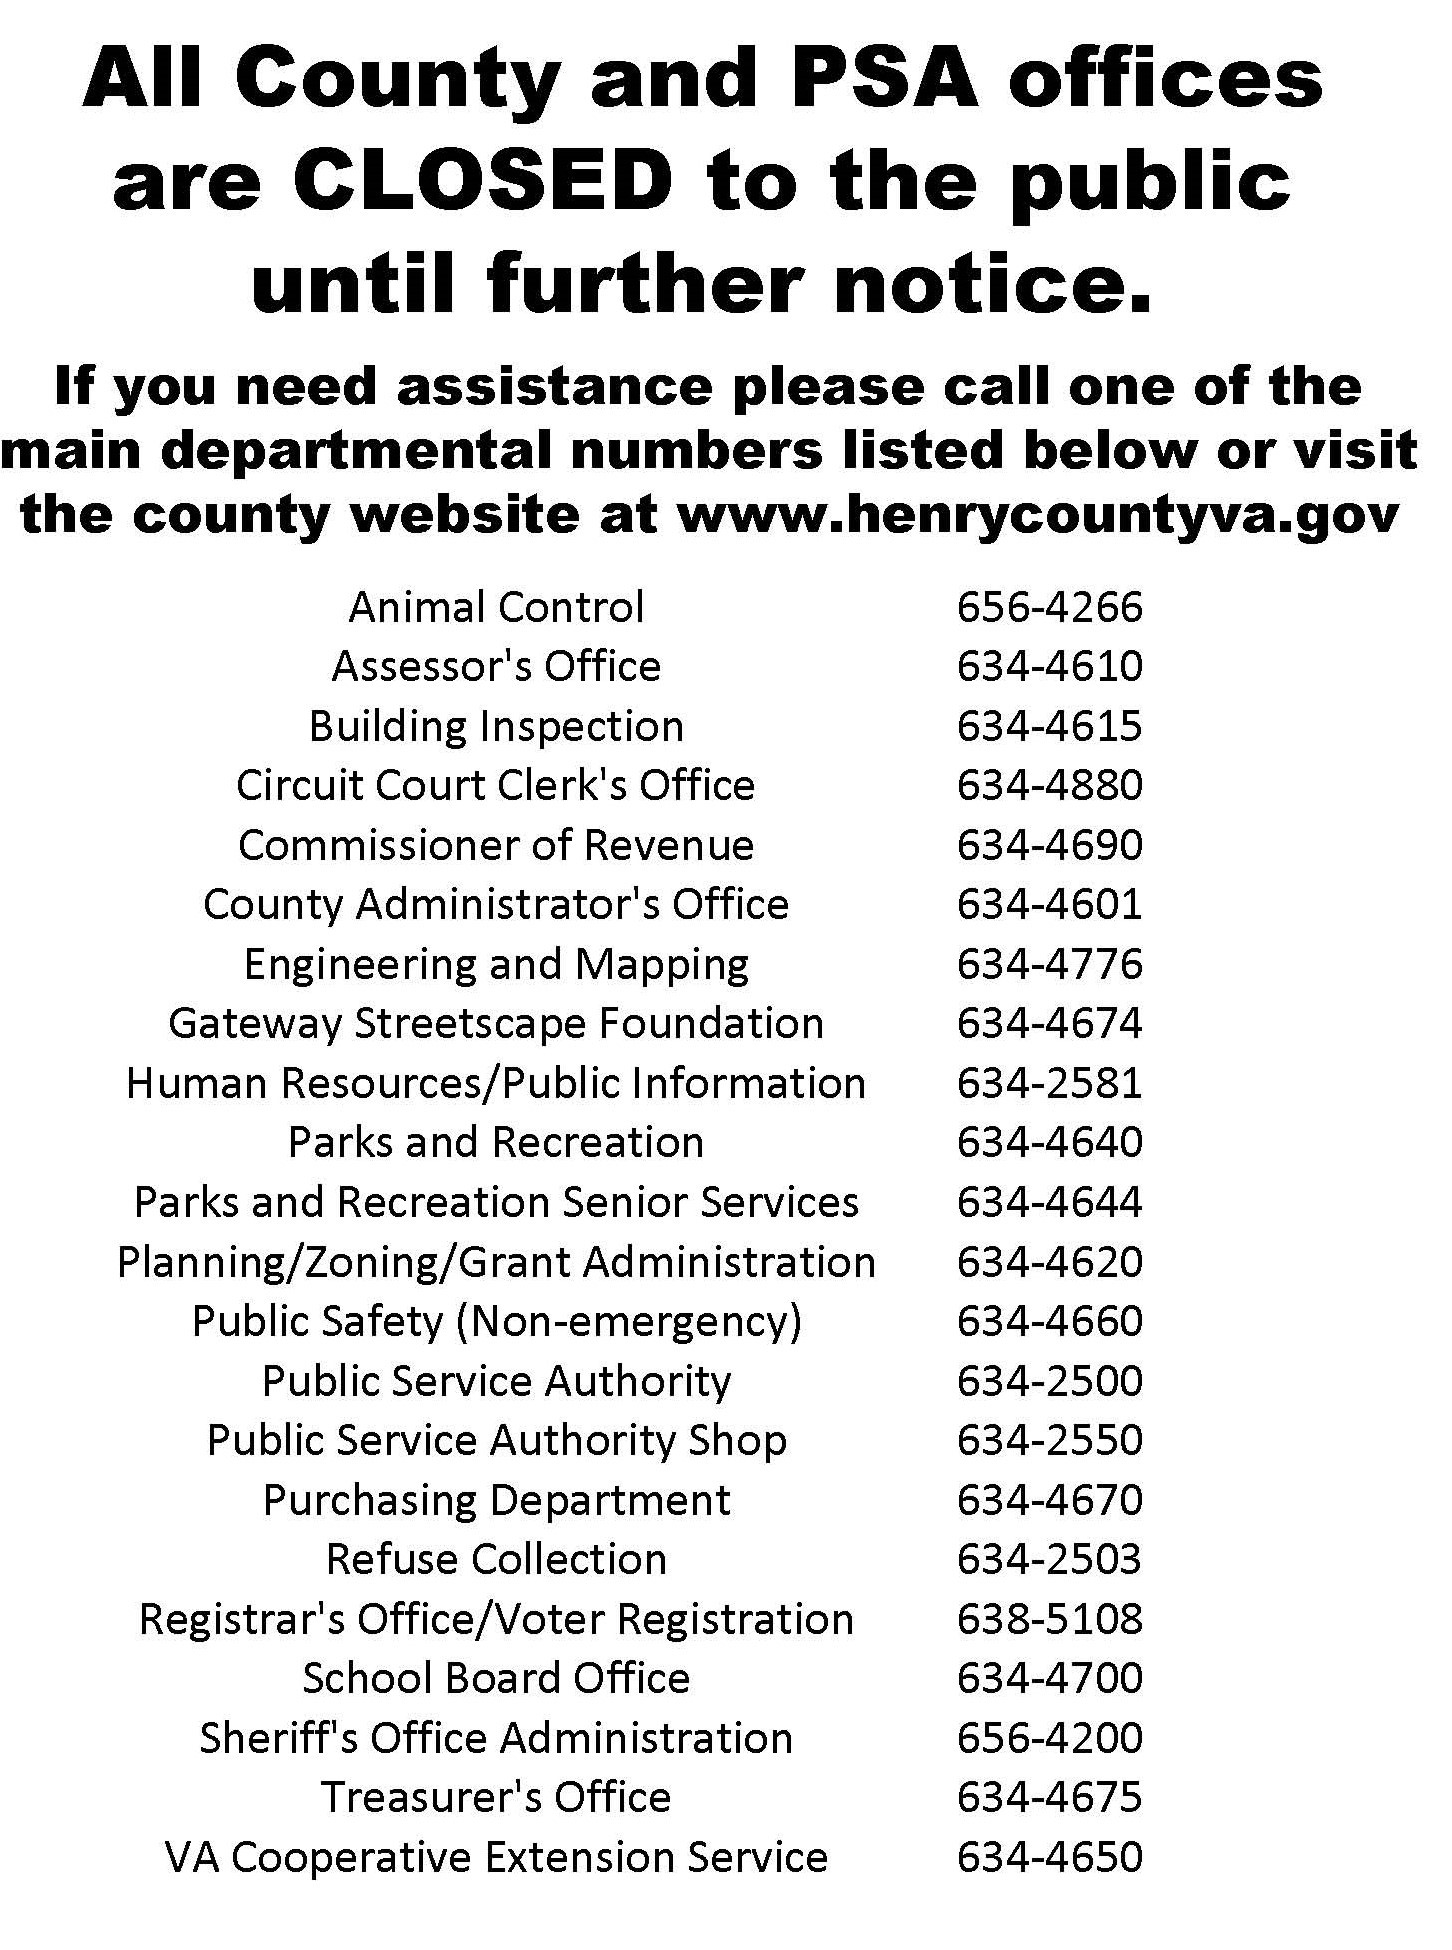 All County and PSA Offices Closed to the Public  Henry County Virginia